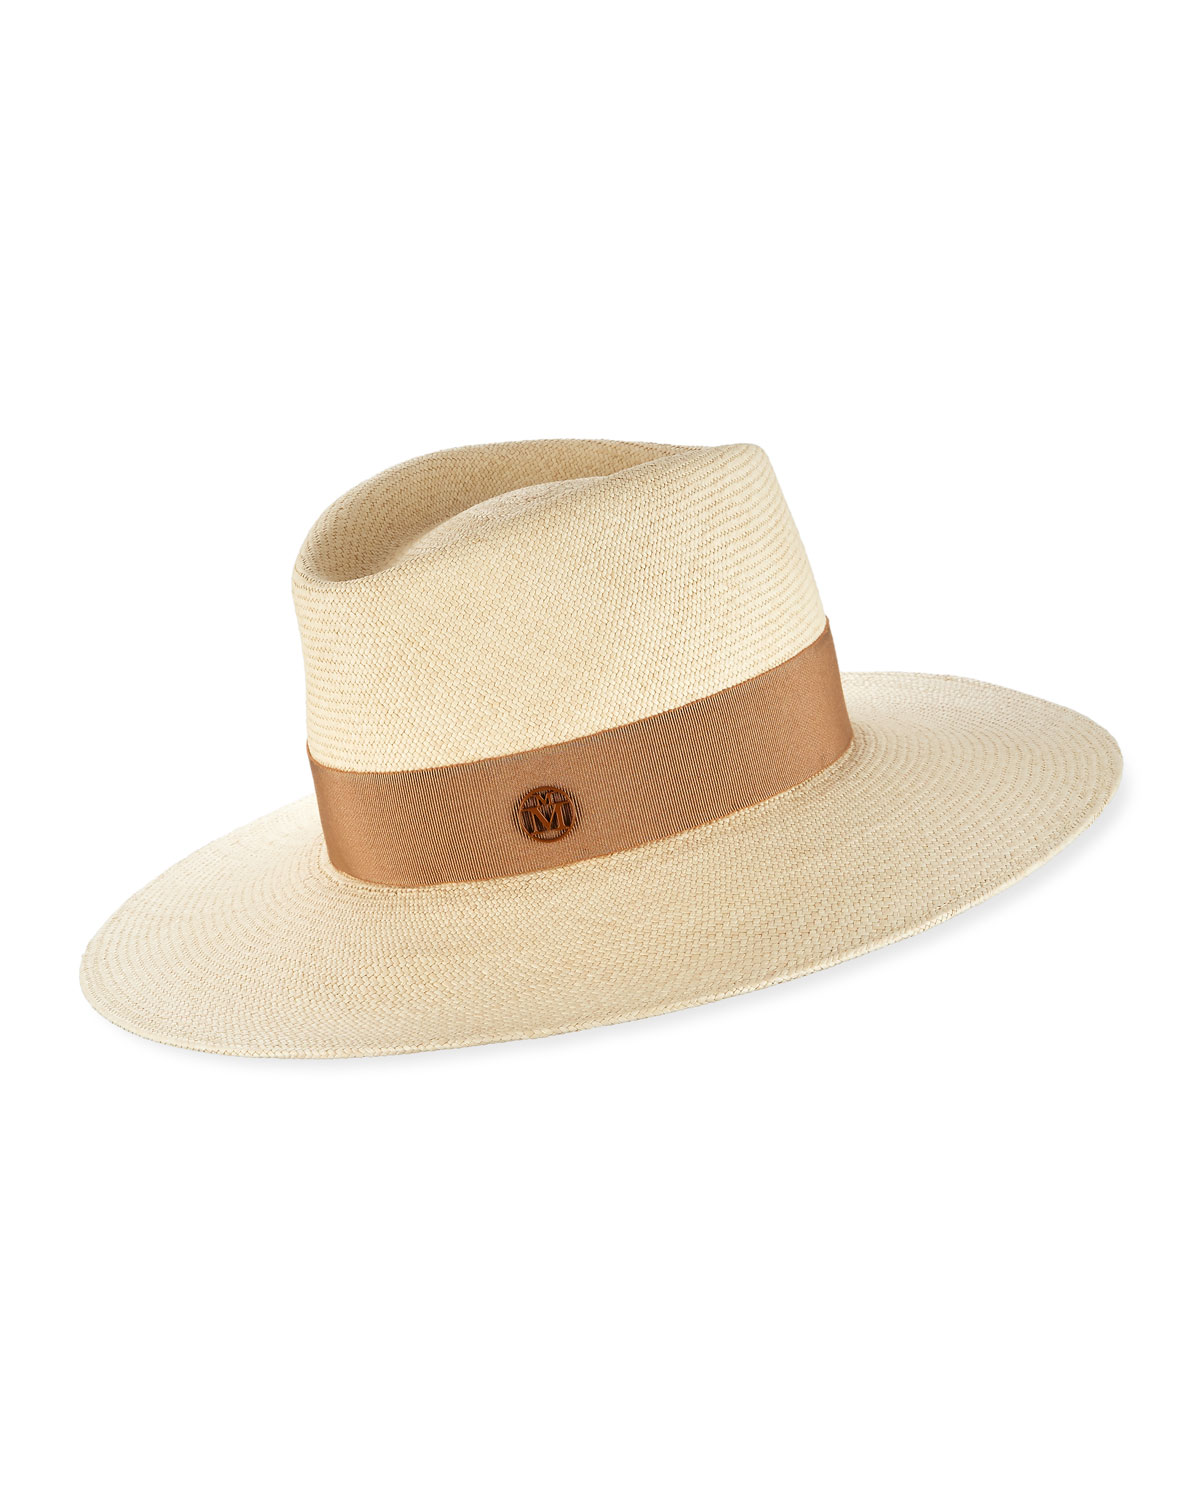 Maison Michel Hats CHARLES TIMELESS FEDORA HAT